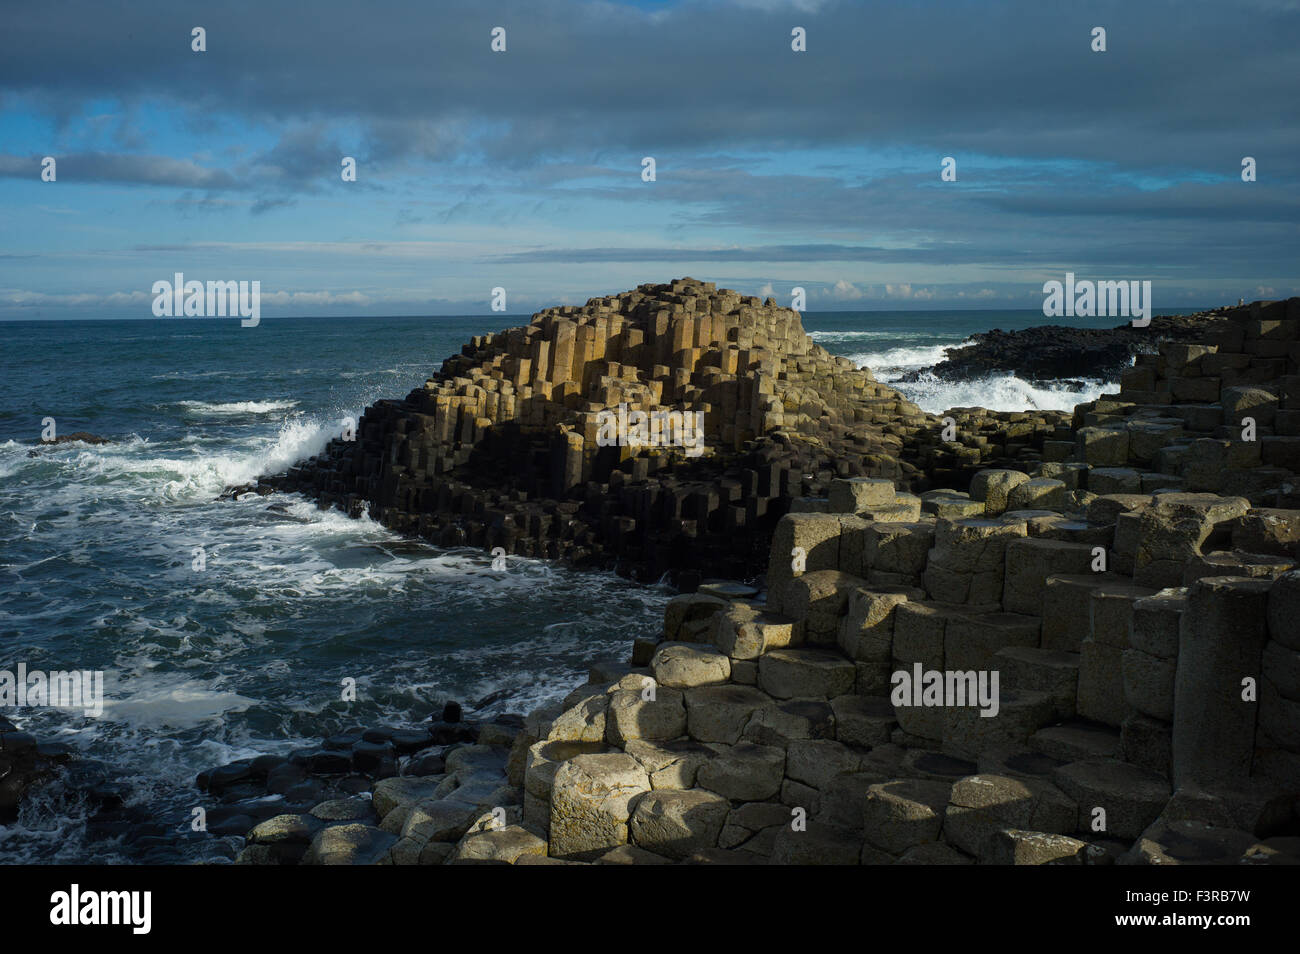 Golden rocks at the UNESCO World Heritage site, GIANTS CAUSEWAY, Bushmills, Antrim, Ireland - Stock Image